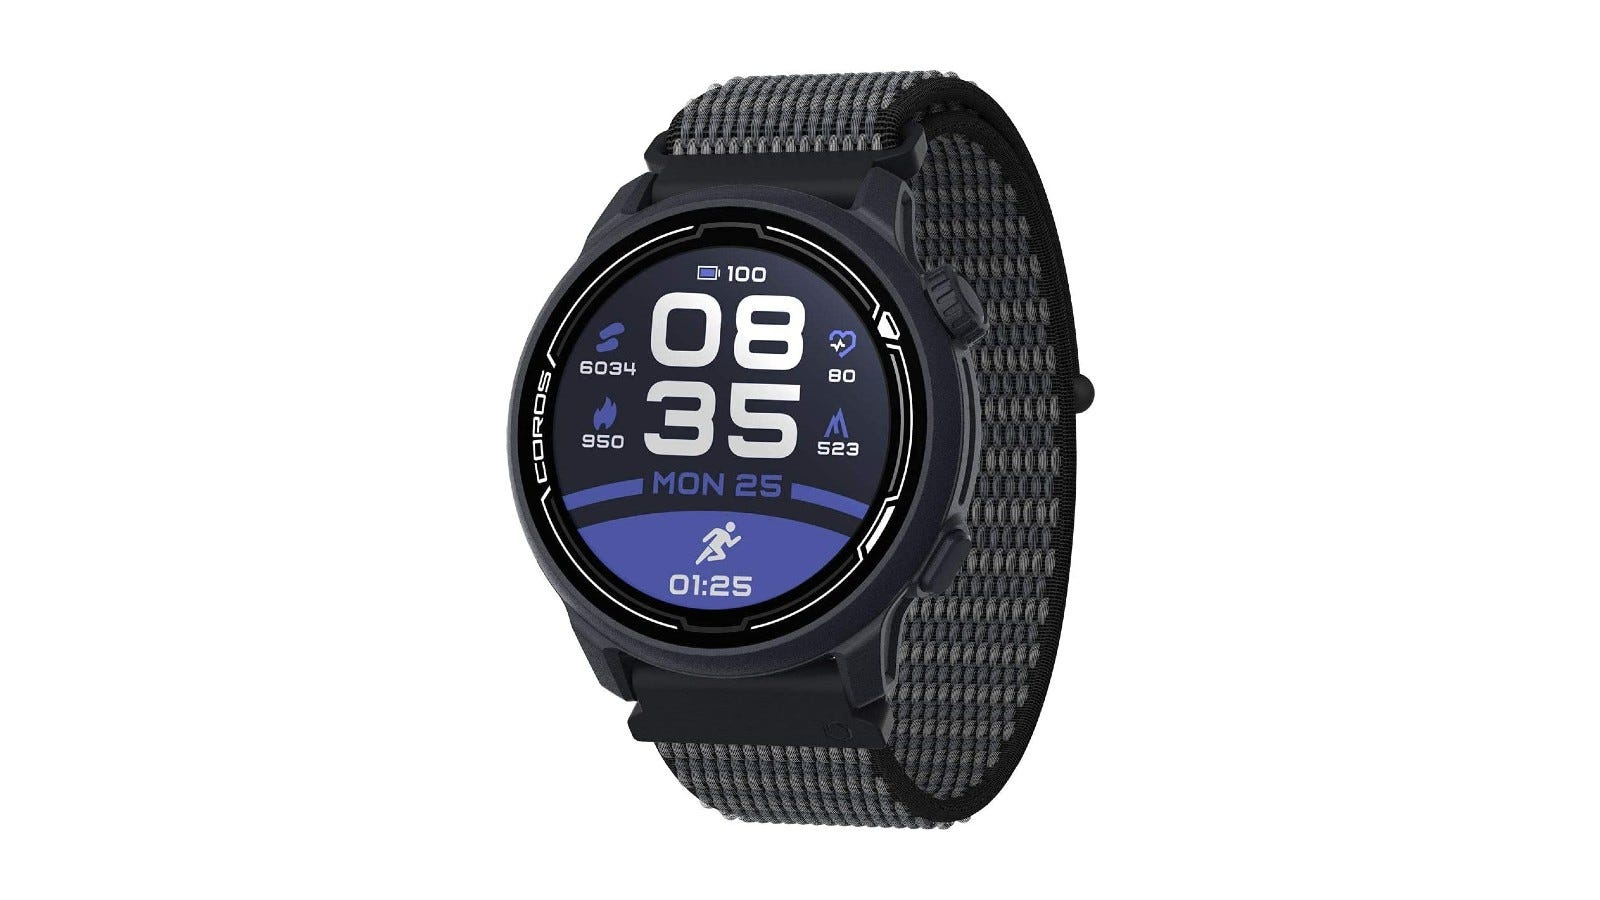 a modern-looking black digital sports watch with blue and white accents on the screen